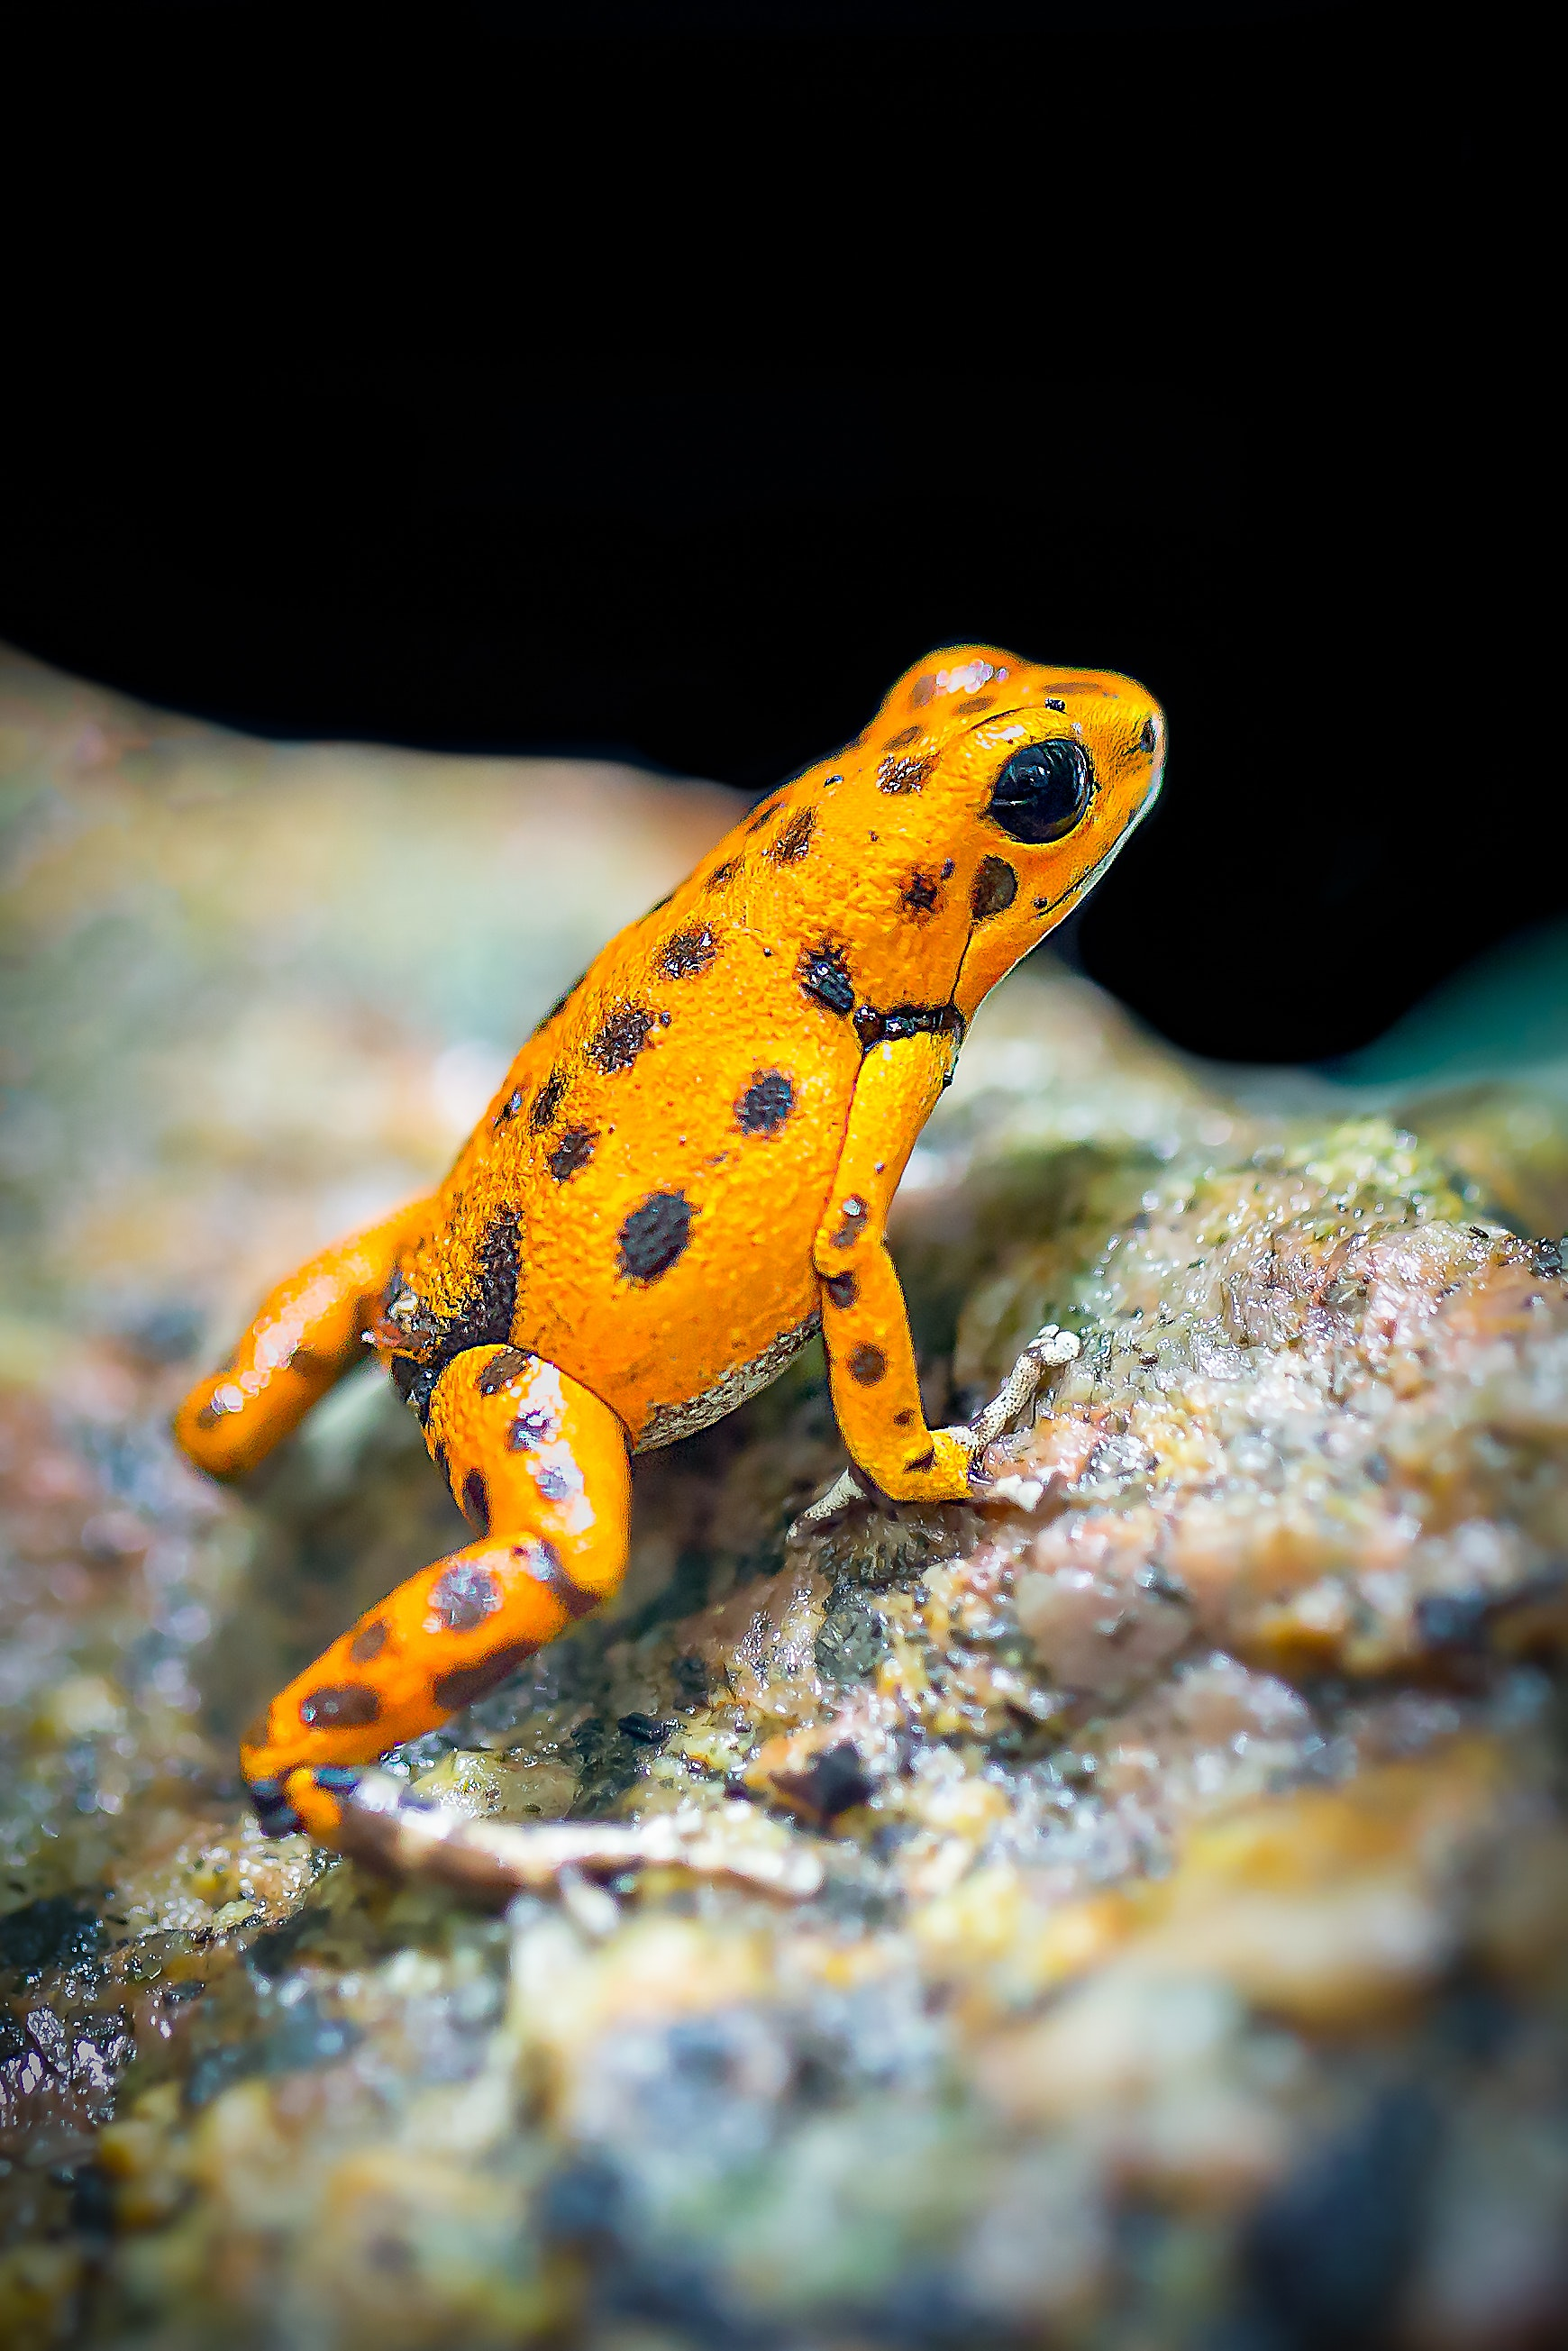 Orange and black frog photo